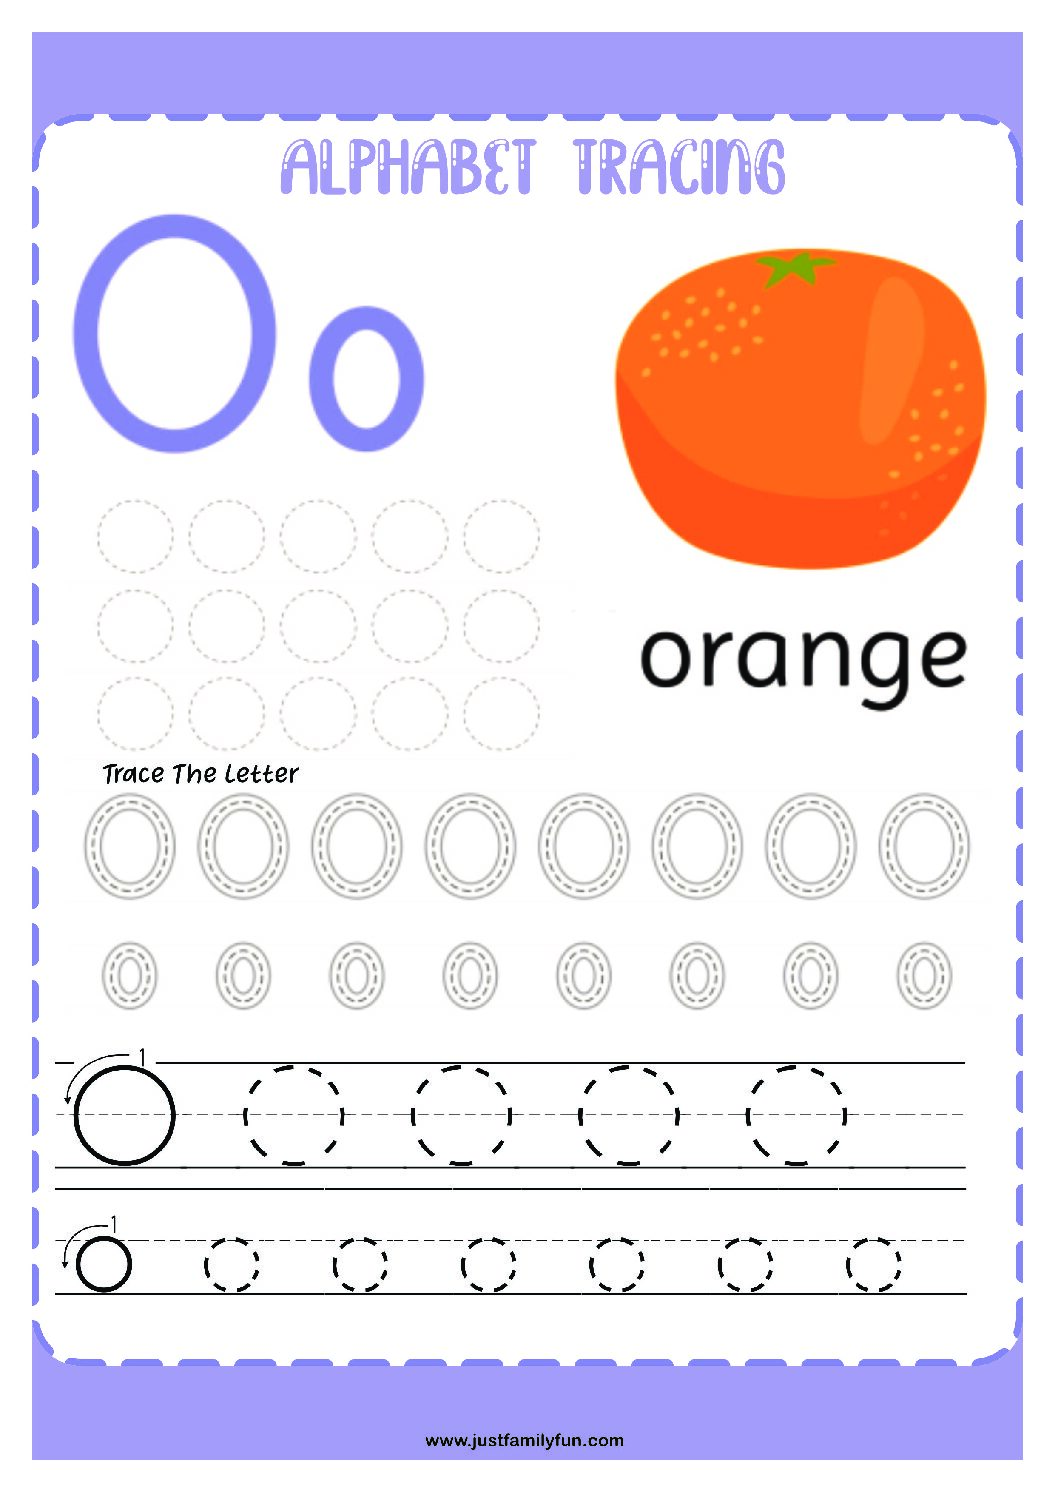 Alphabets_15-pdf Free Printable Trace The Alphabet Worksheets for Kids.